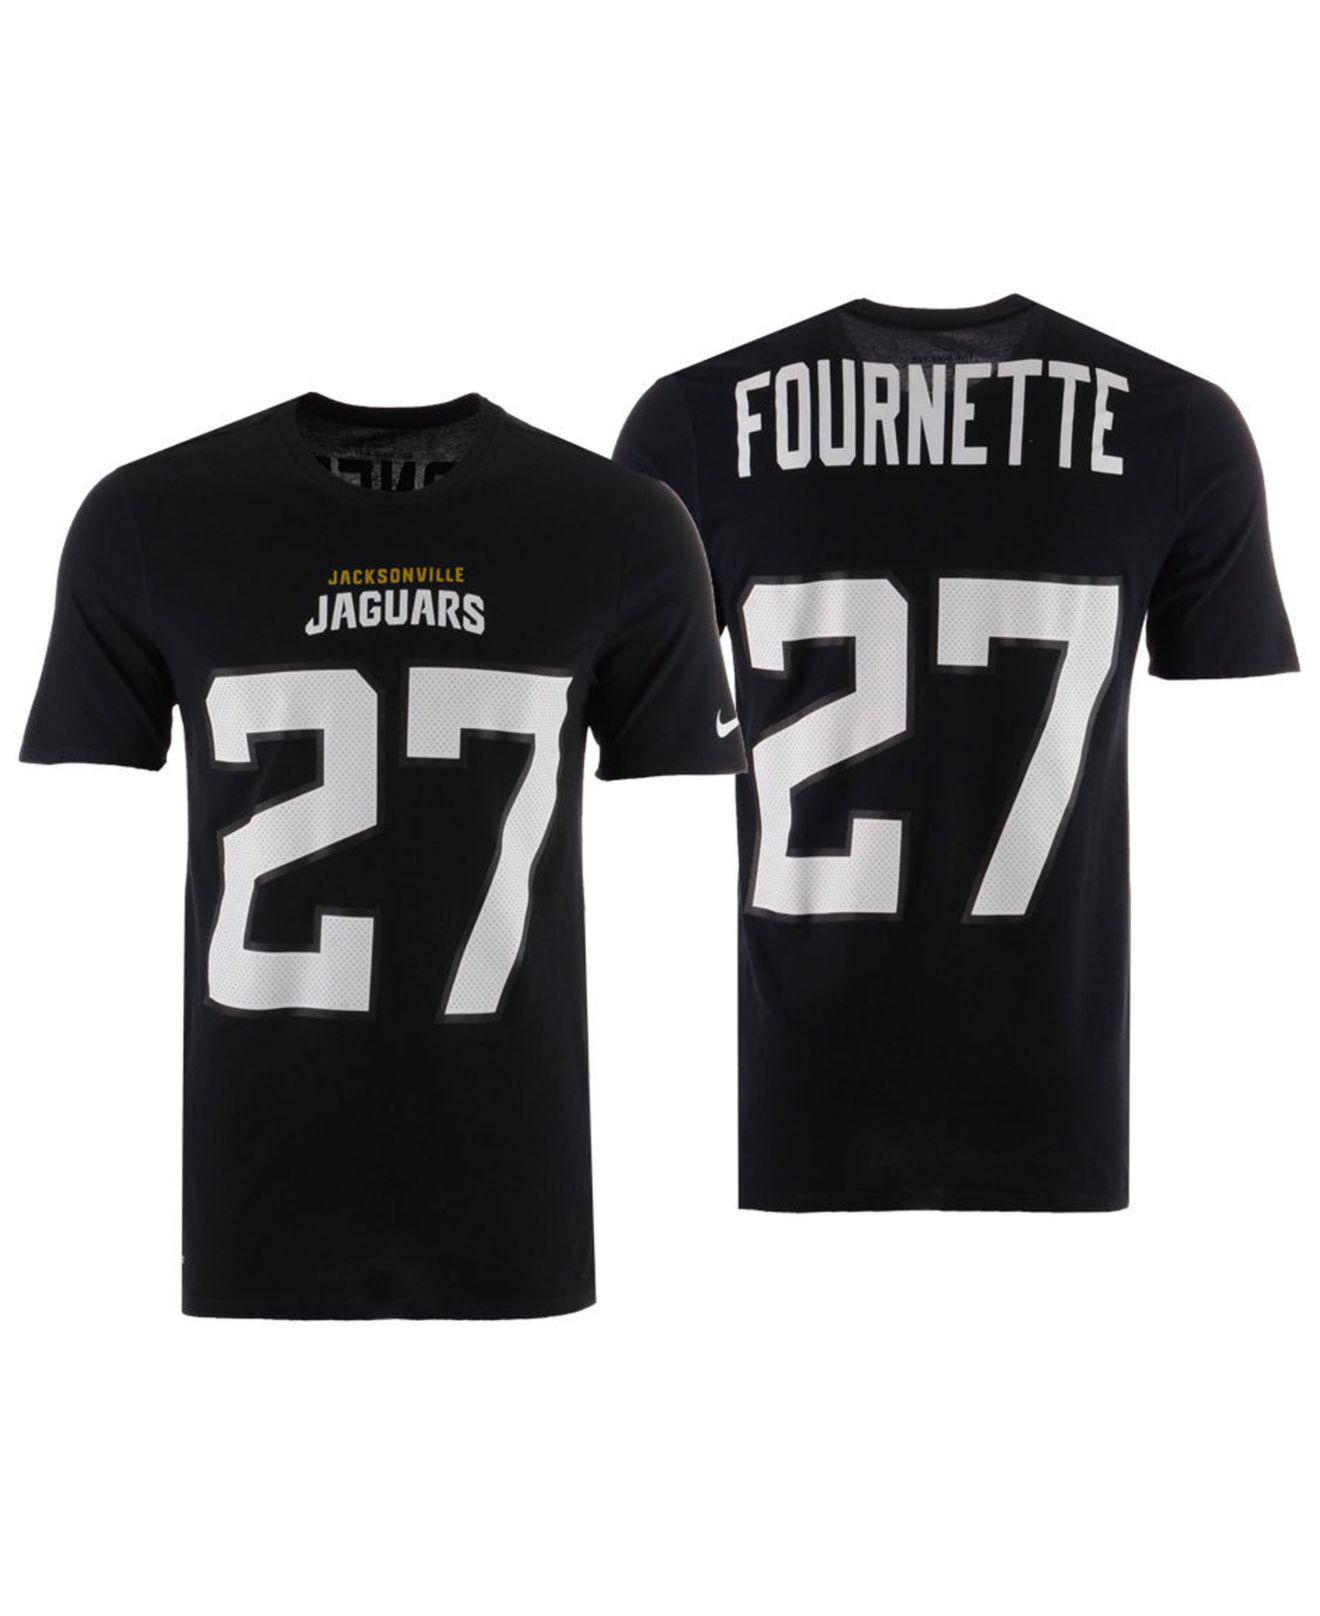 it pair merchandise south when cool pin keep jaguars nike apparel you this jaguar afc your gear season jacksonville champs hats t shirts jerseys